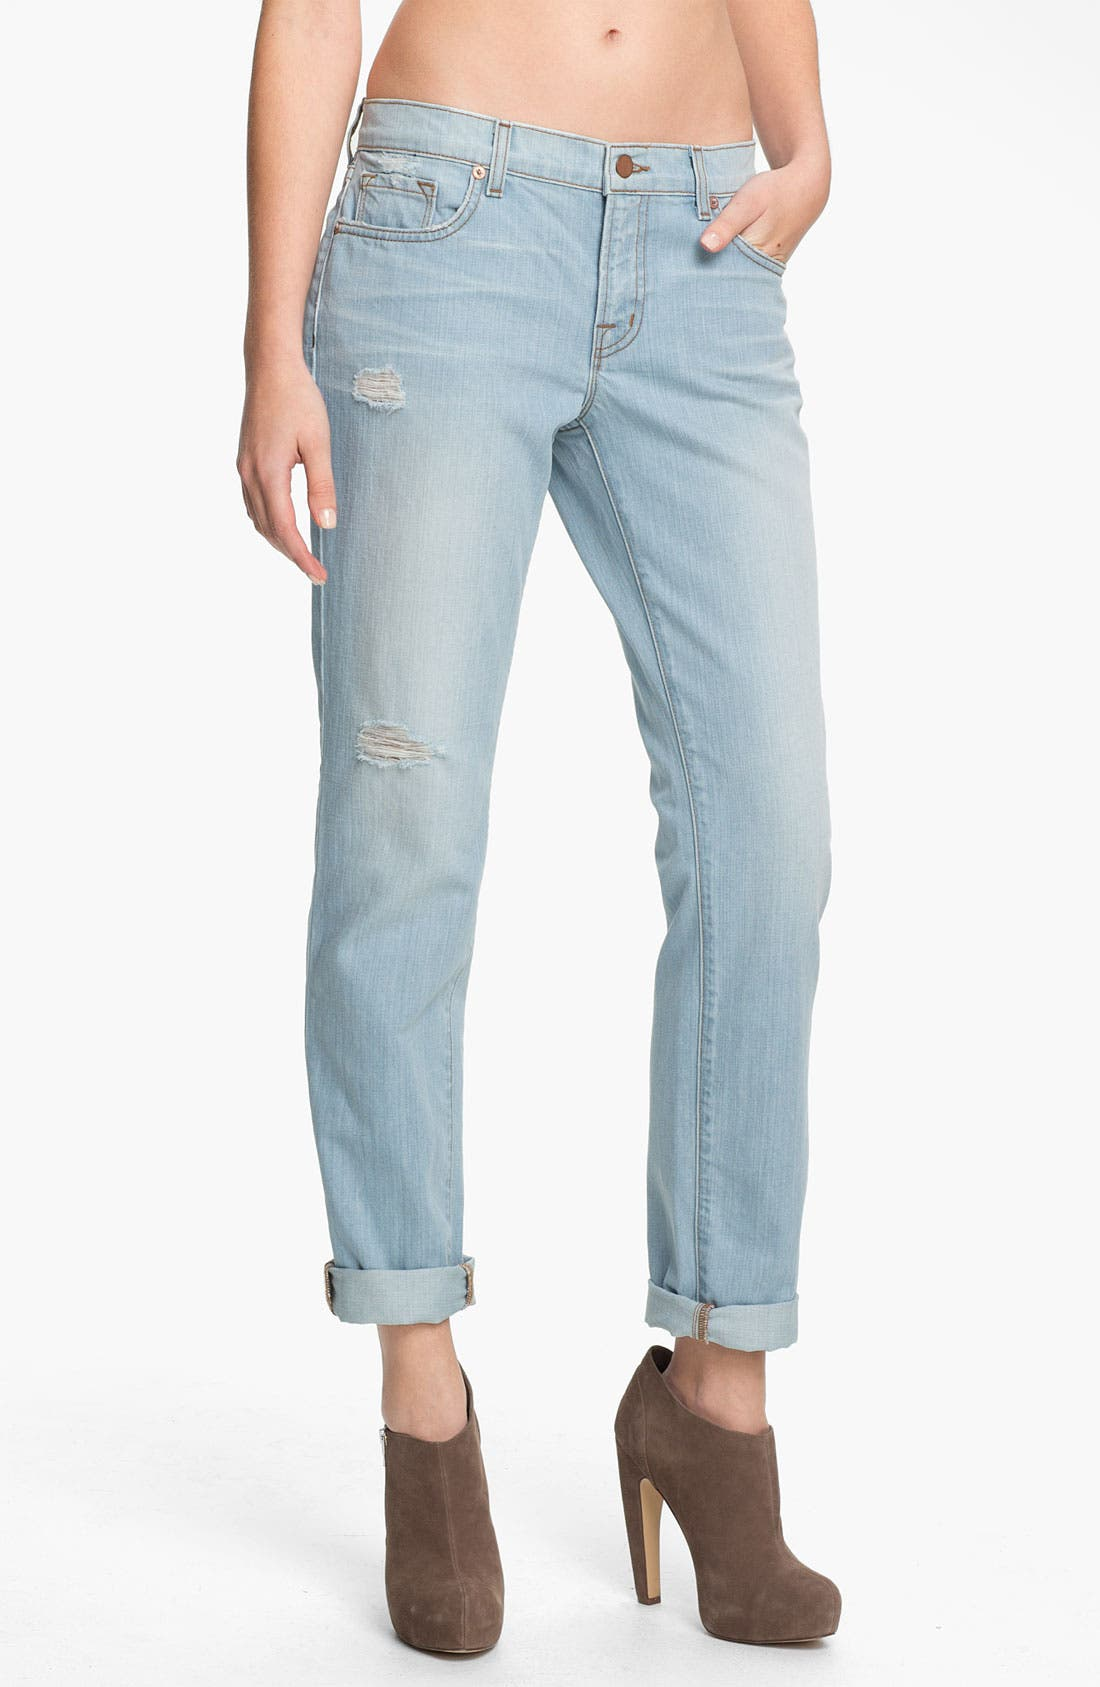 Alternate Image 1 Selected - J Brand 'Aidan' Distressed Boyfriend Fit Jeans (Illusion Destruct)